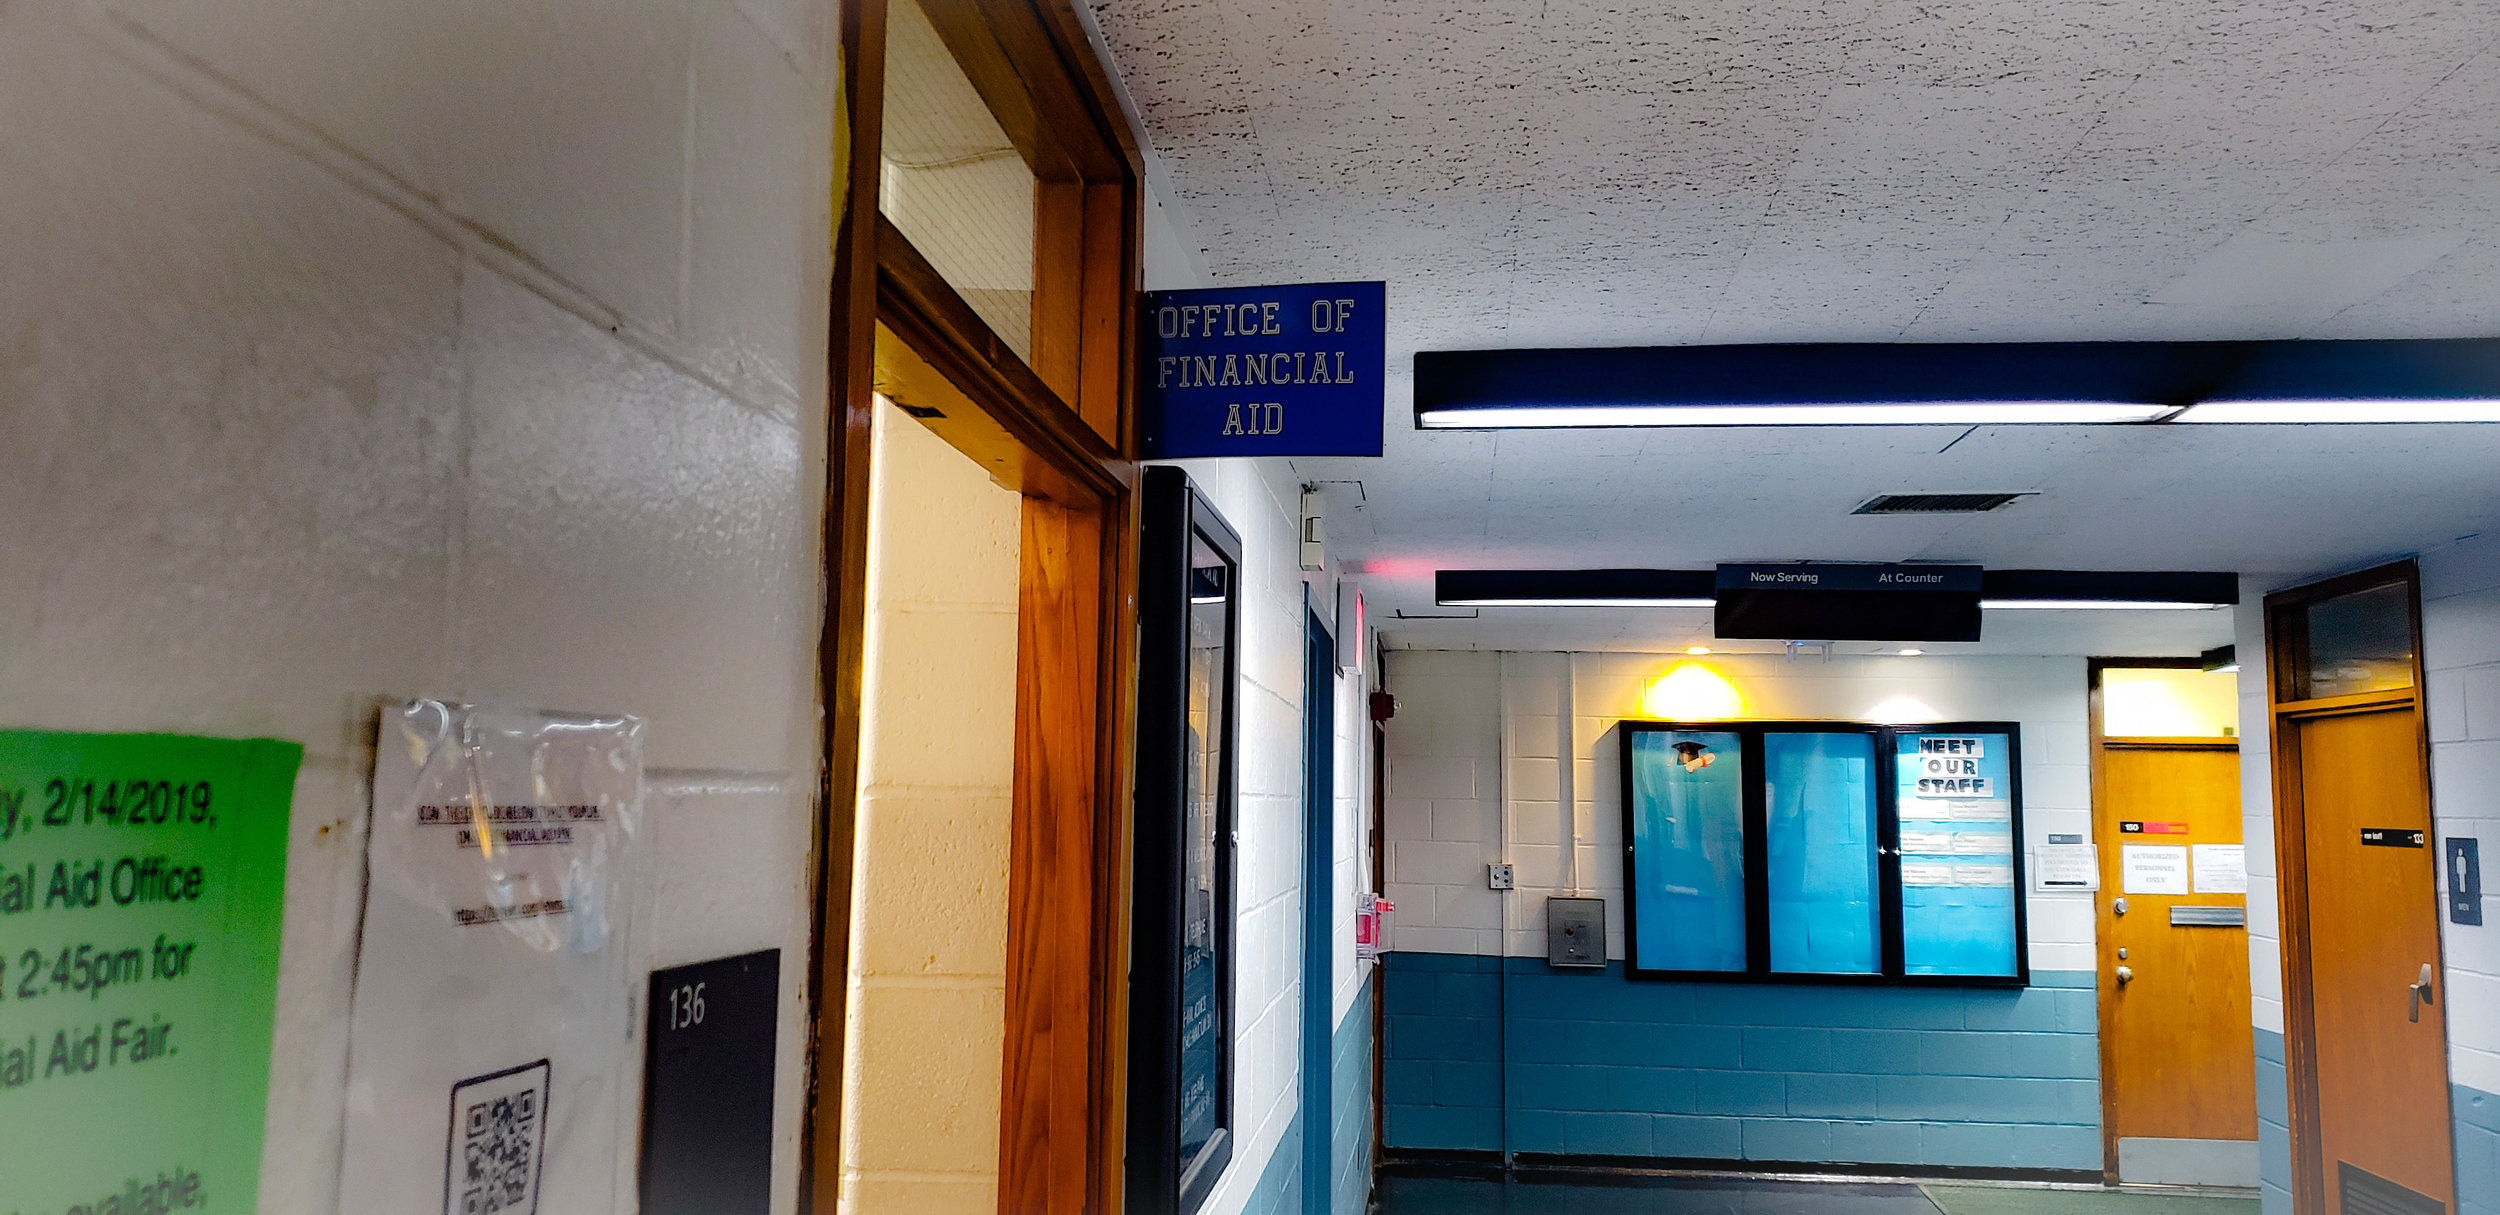 Lehman College Office of Financial Aid, located in Shuster Hall room 136.